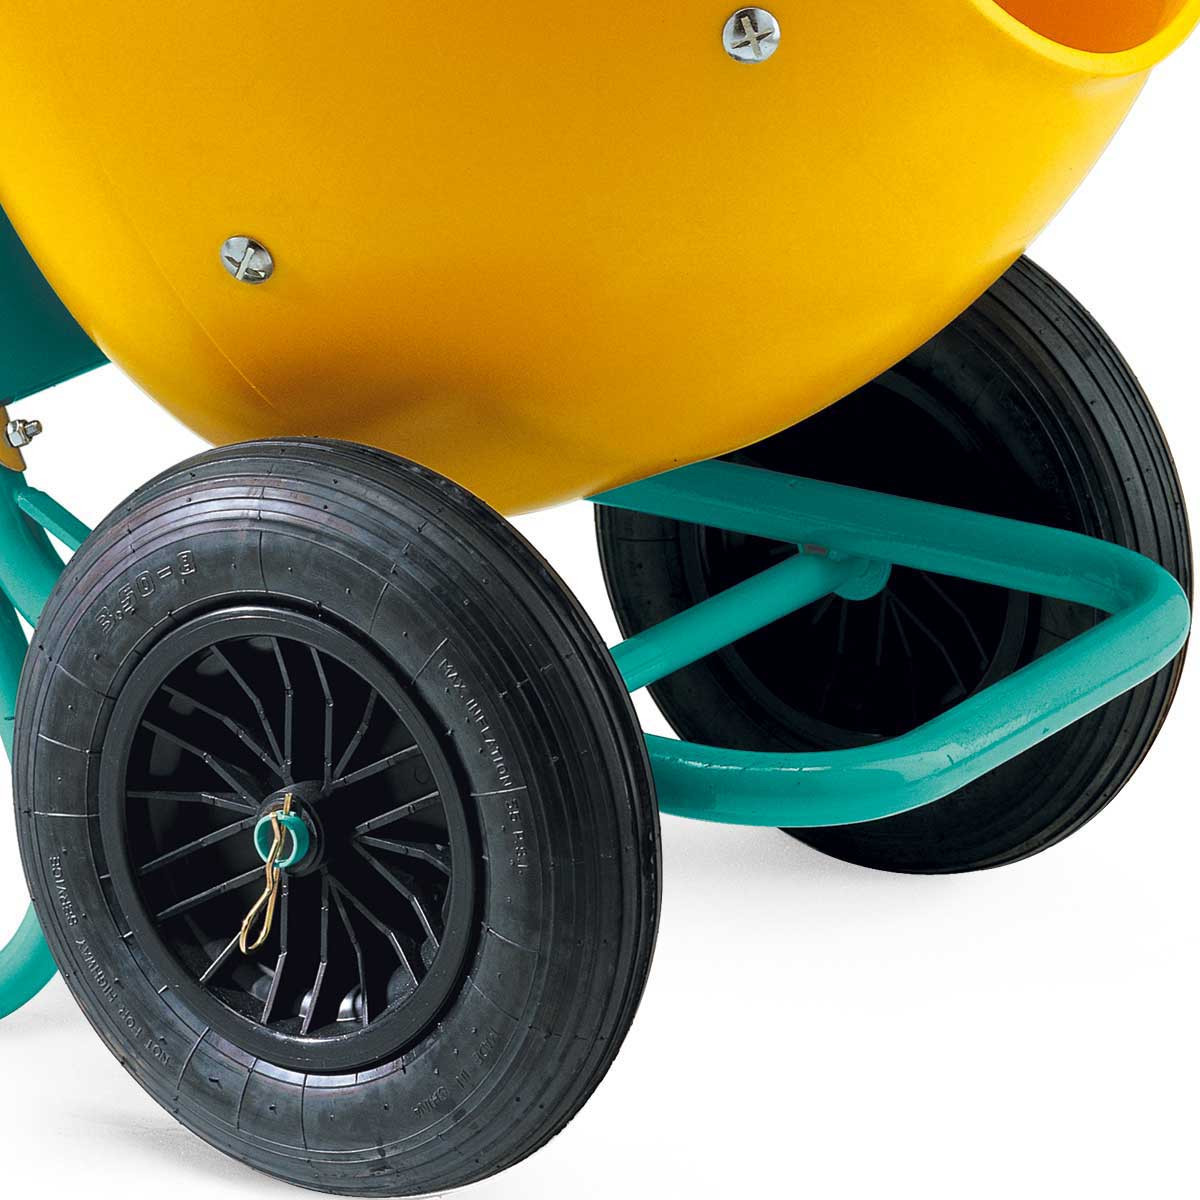 Imer Wheelman Concrete Mixer wheels